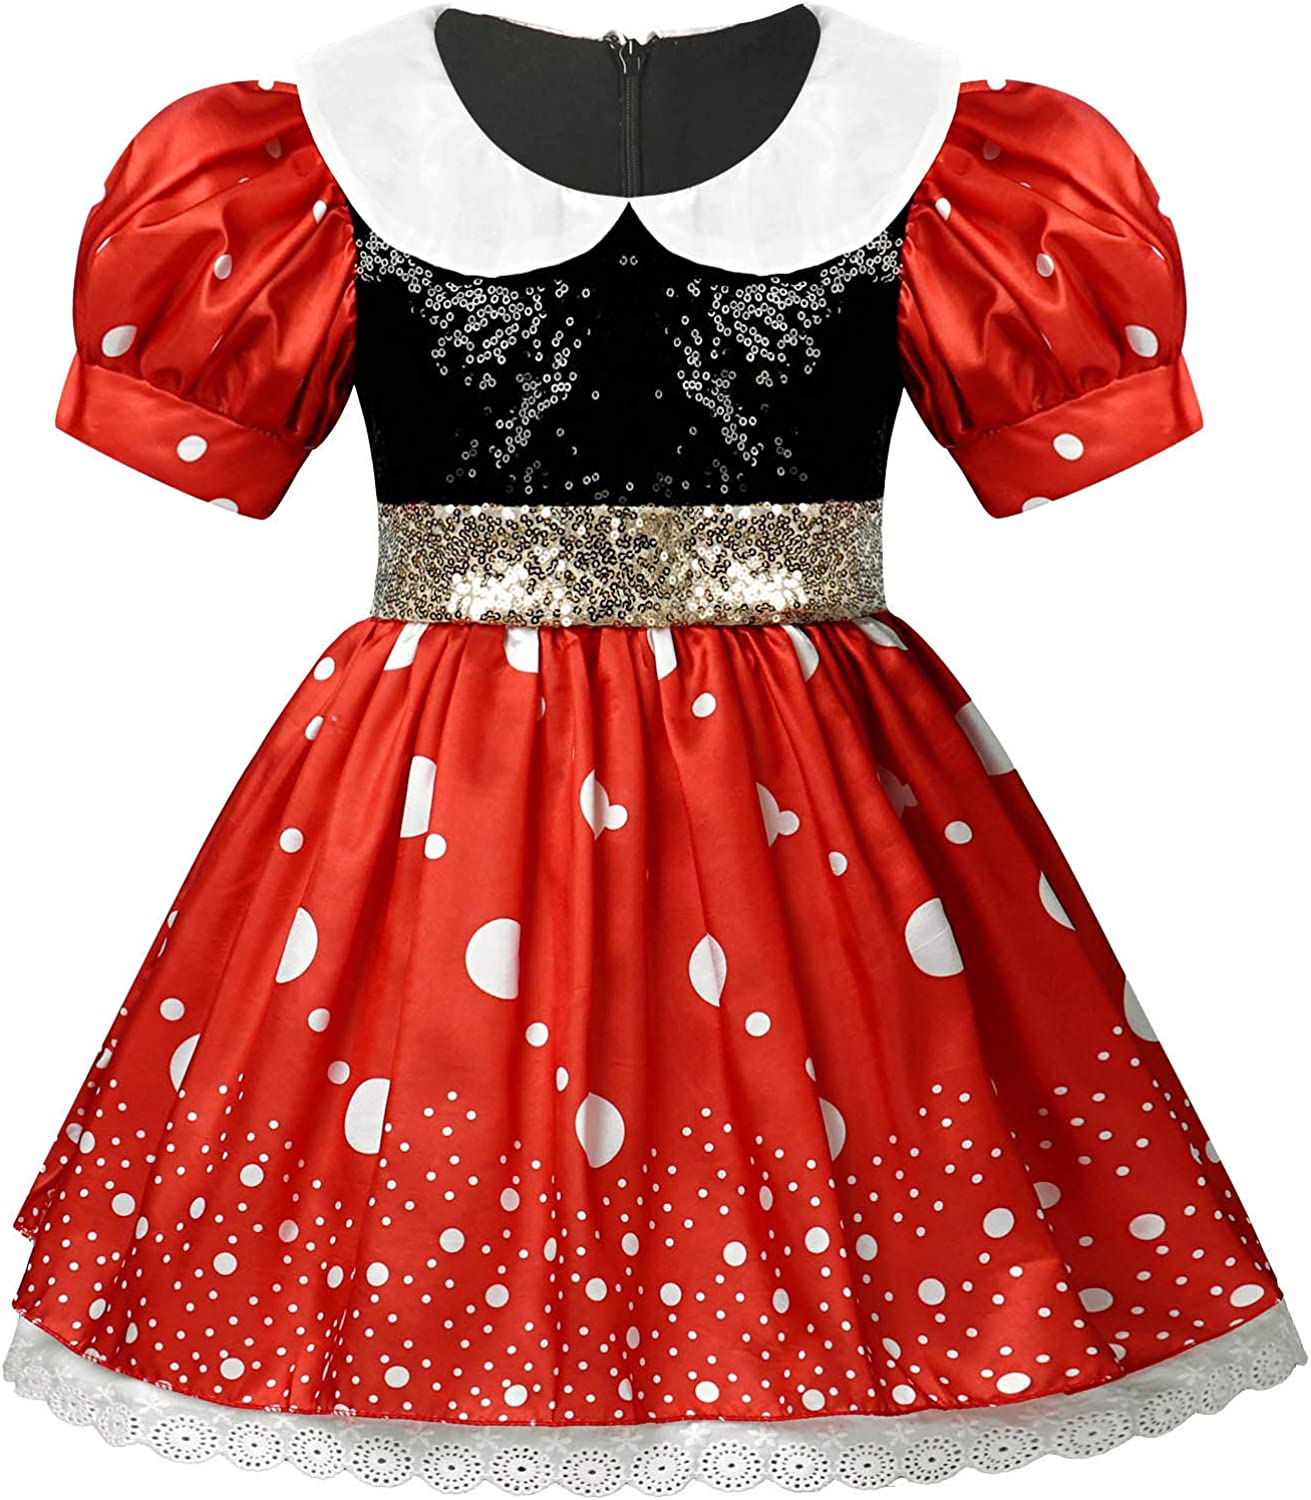 YOOJIA Kids Girls Puff Sleeve Special Occasion Dresses Shiny Sequins Bowknot Princess Dress Holiday Outfits Carnival